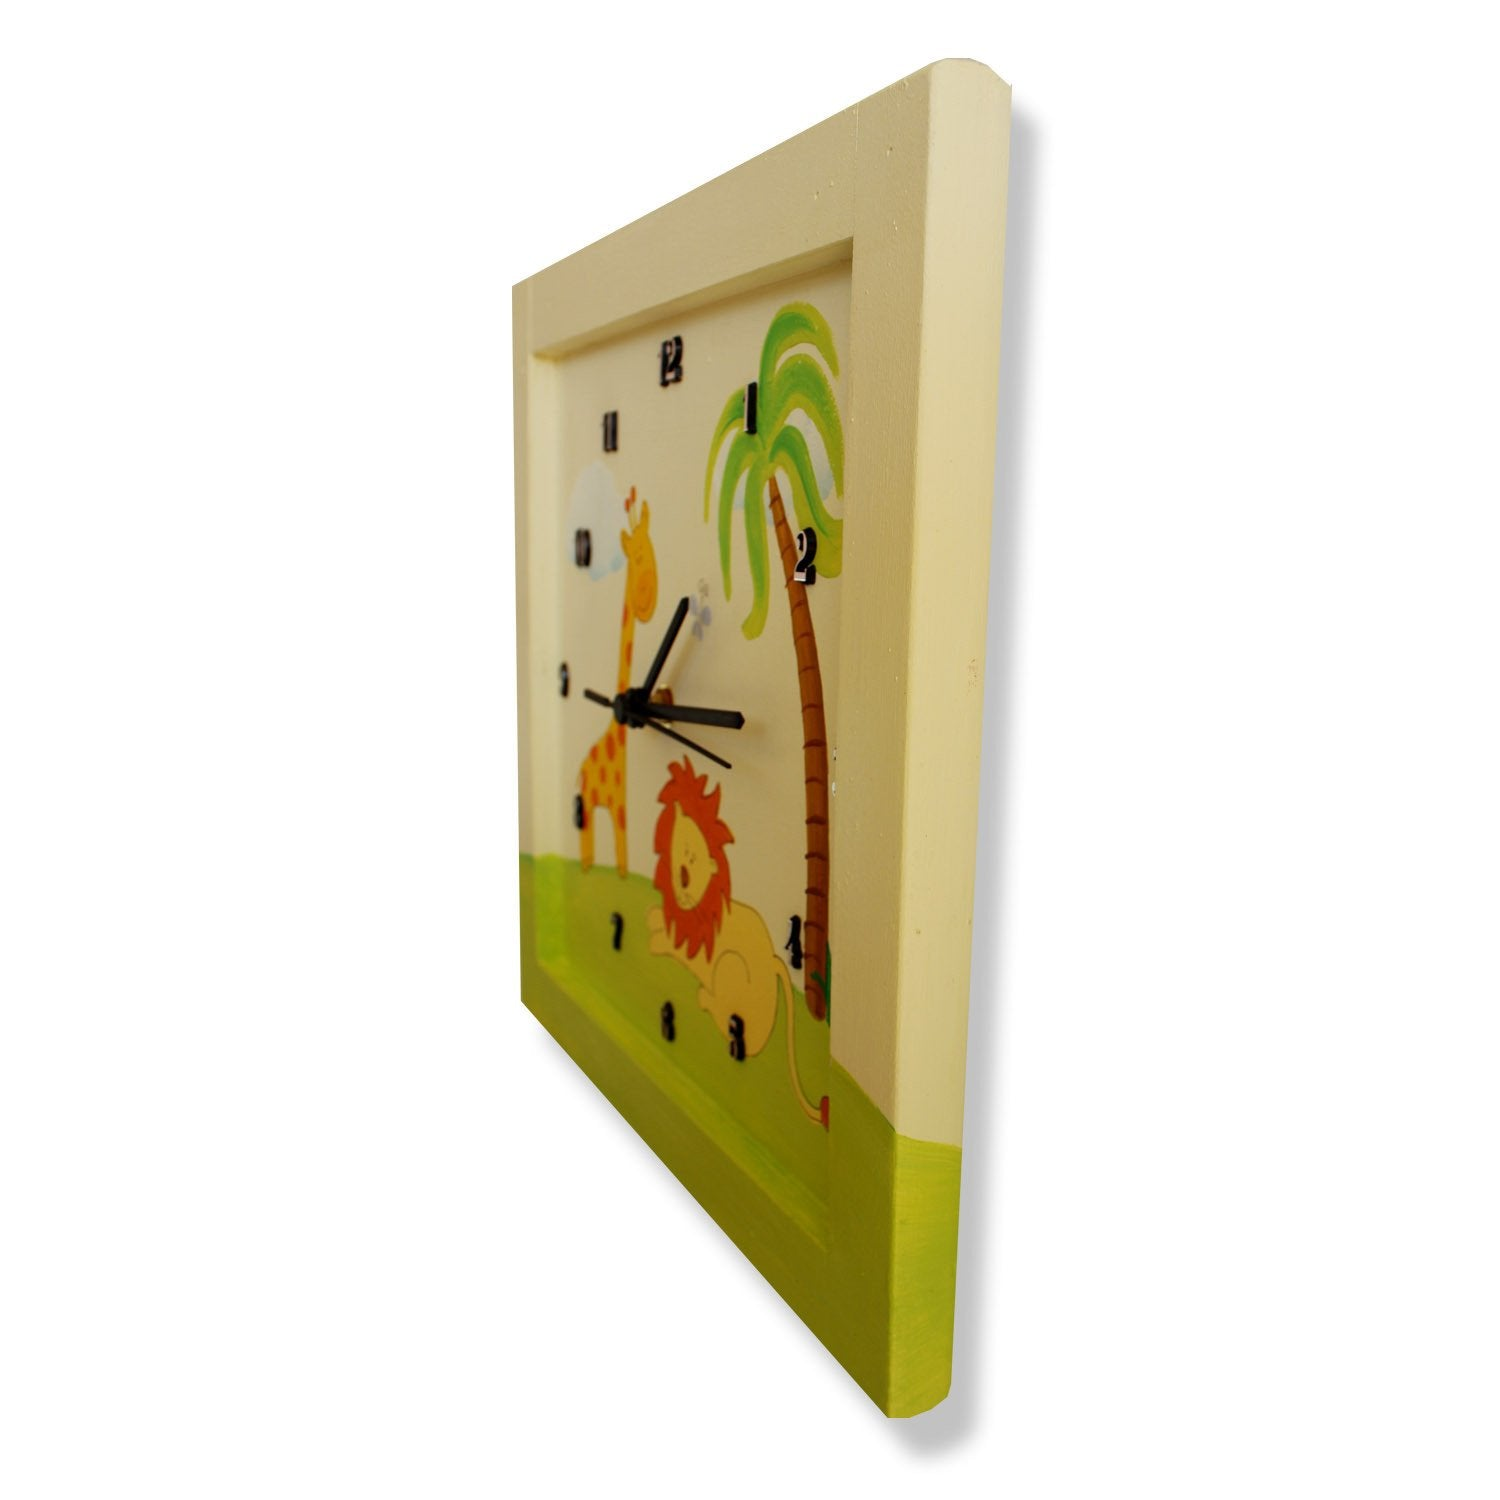 Personalized Childrens Wall Clocks In Hebrew Or English Moderntribe